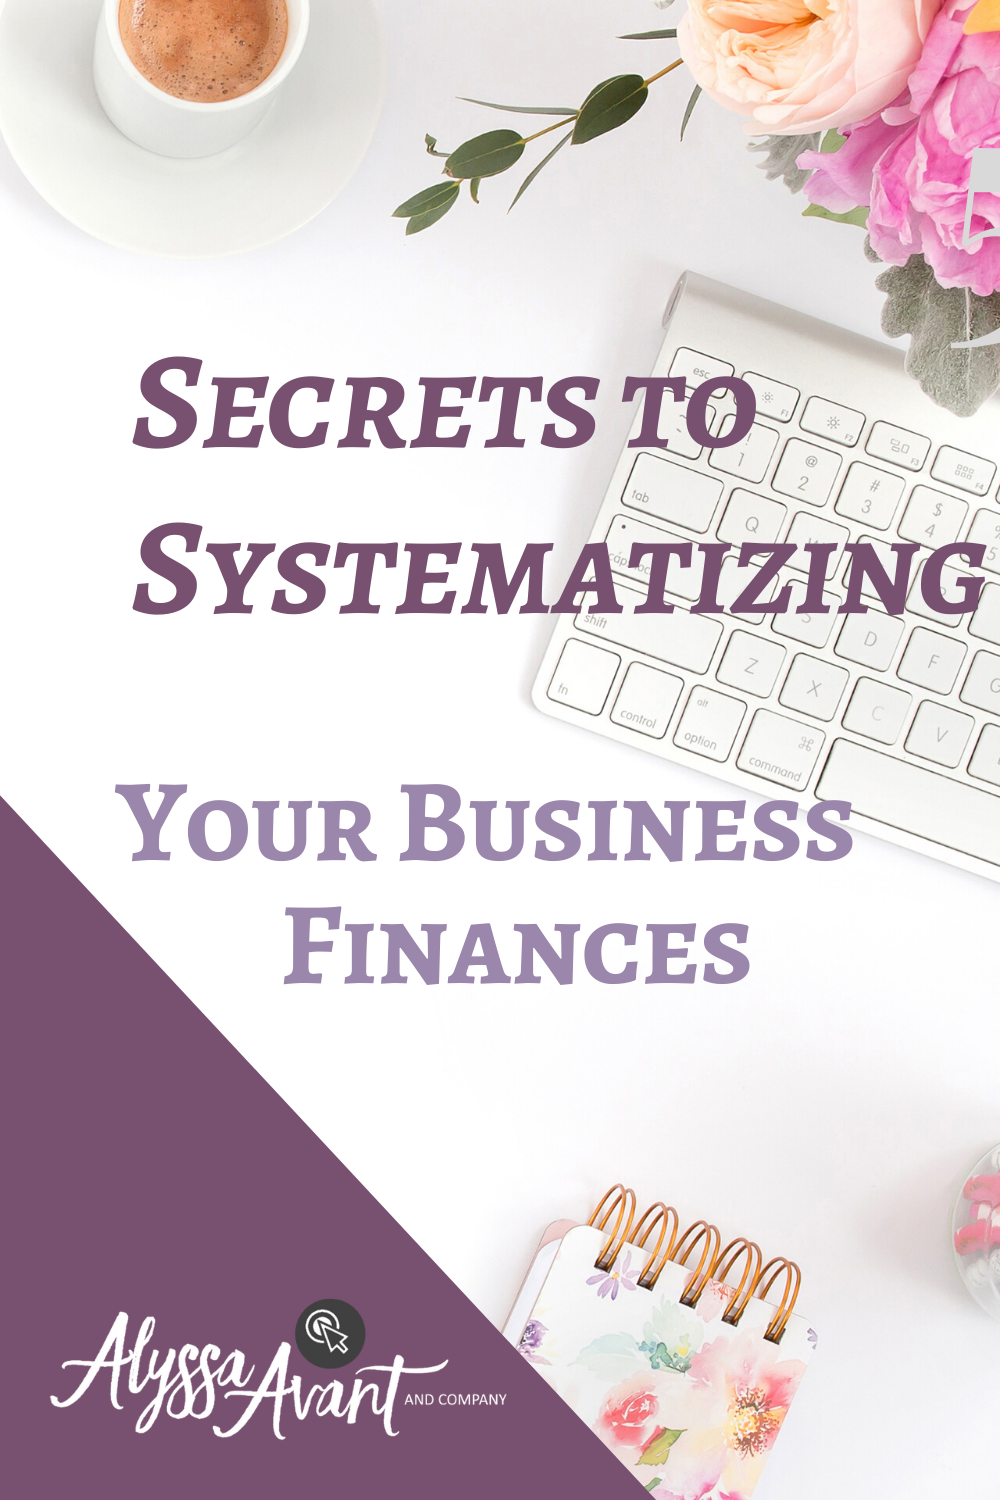 Secrets to Systematizing Your Business Finances